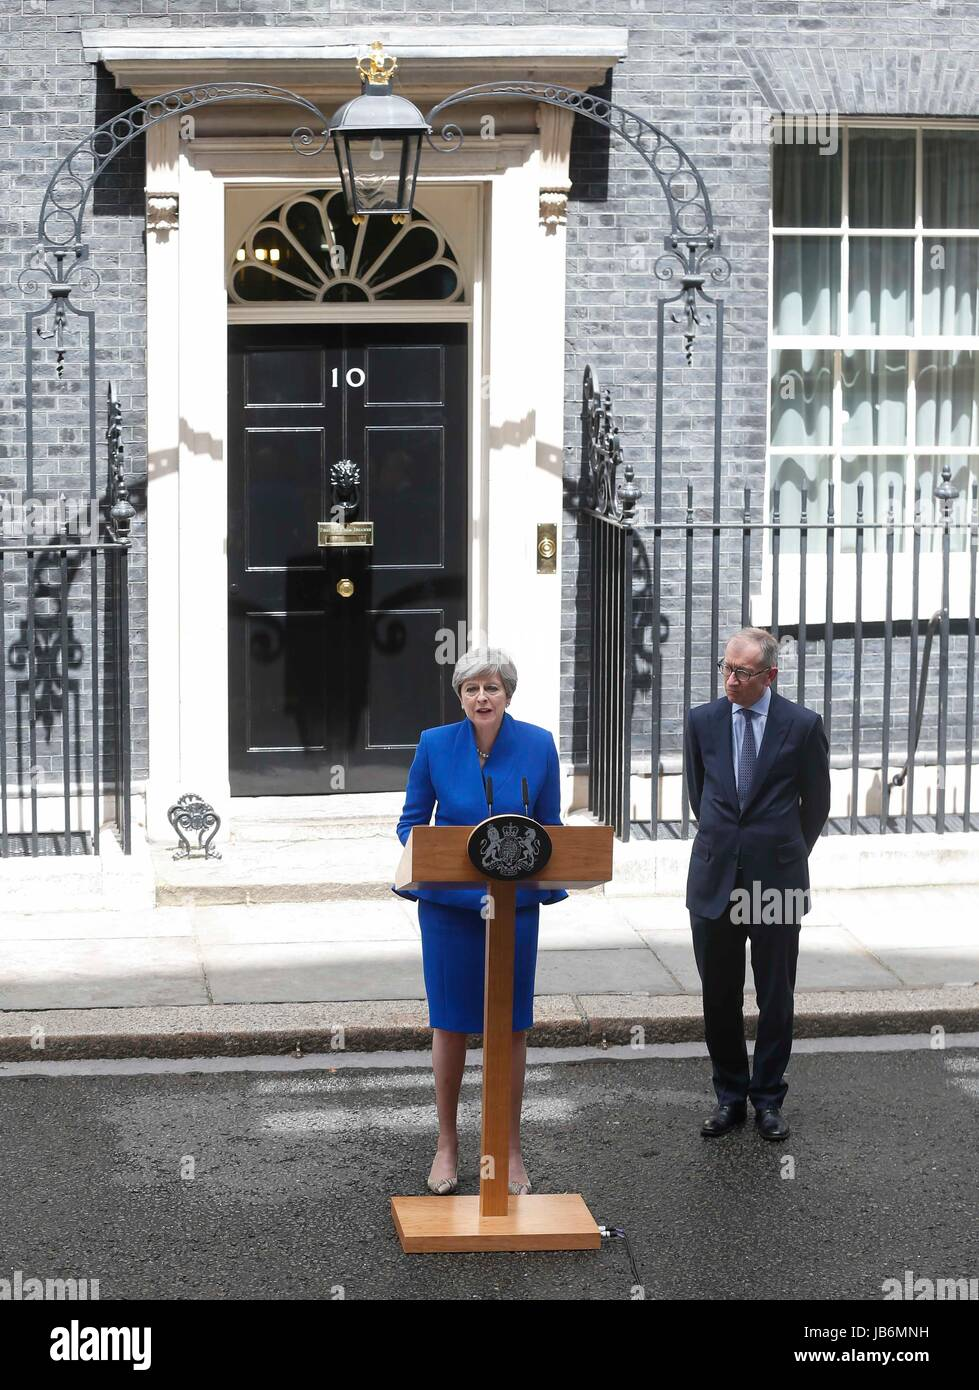 London, UK. 9th June, 2017. British Prime Minister Theresa May (L) gives a speech after a 15-minute audience at - Stock Image